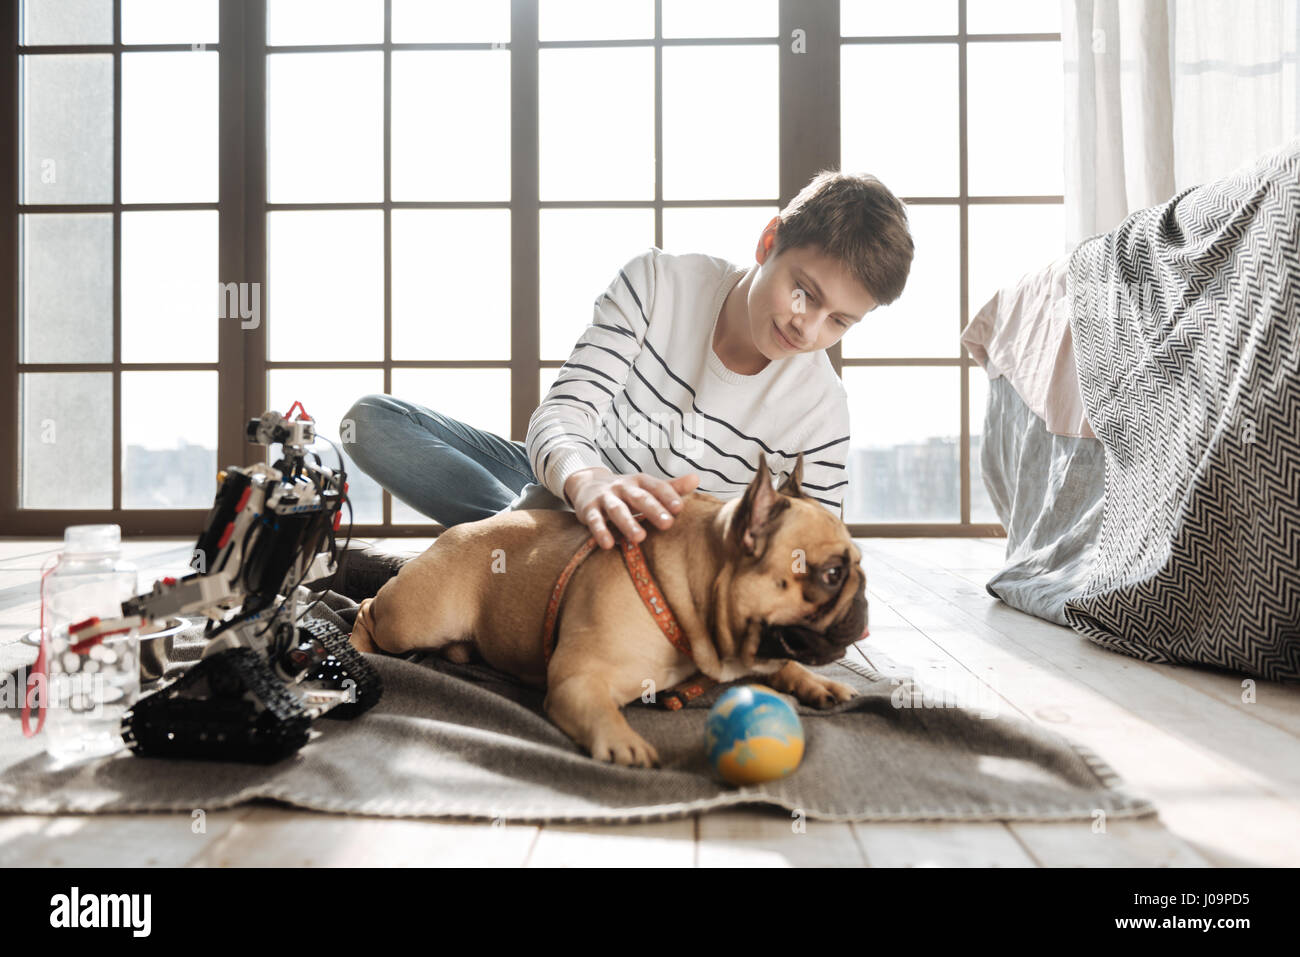 Obedient pet. Attractive man-child sitting behind his dog on the floor smiling and staring at him - Stock Image